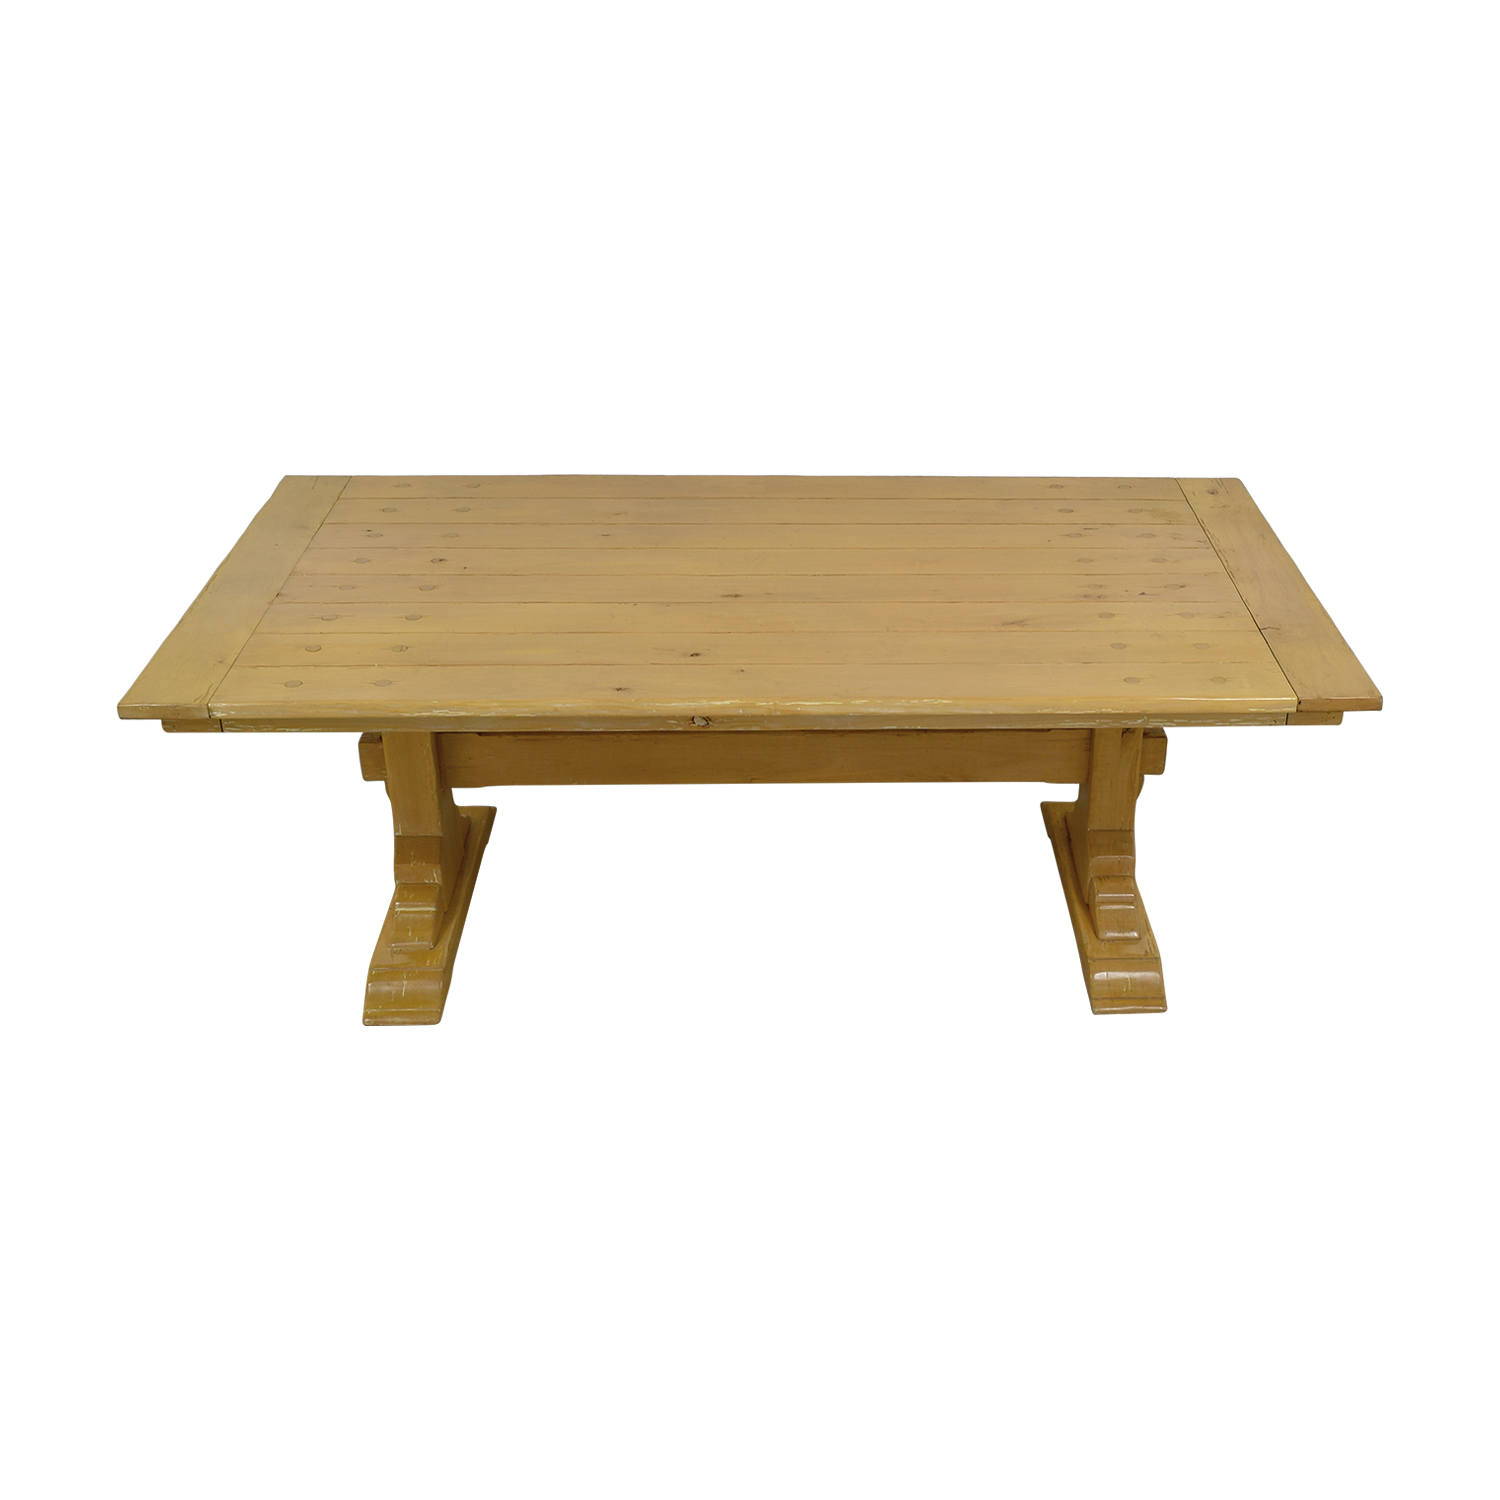 Lexington Avenue Design Center Lexington Avenue Design Center Natural Dining Table coupon